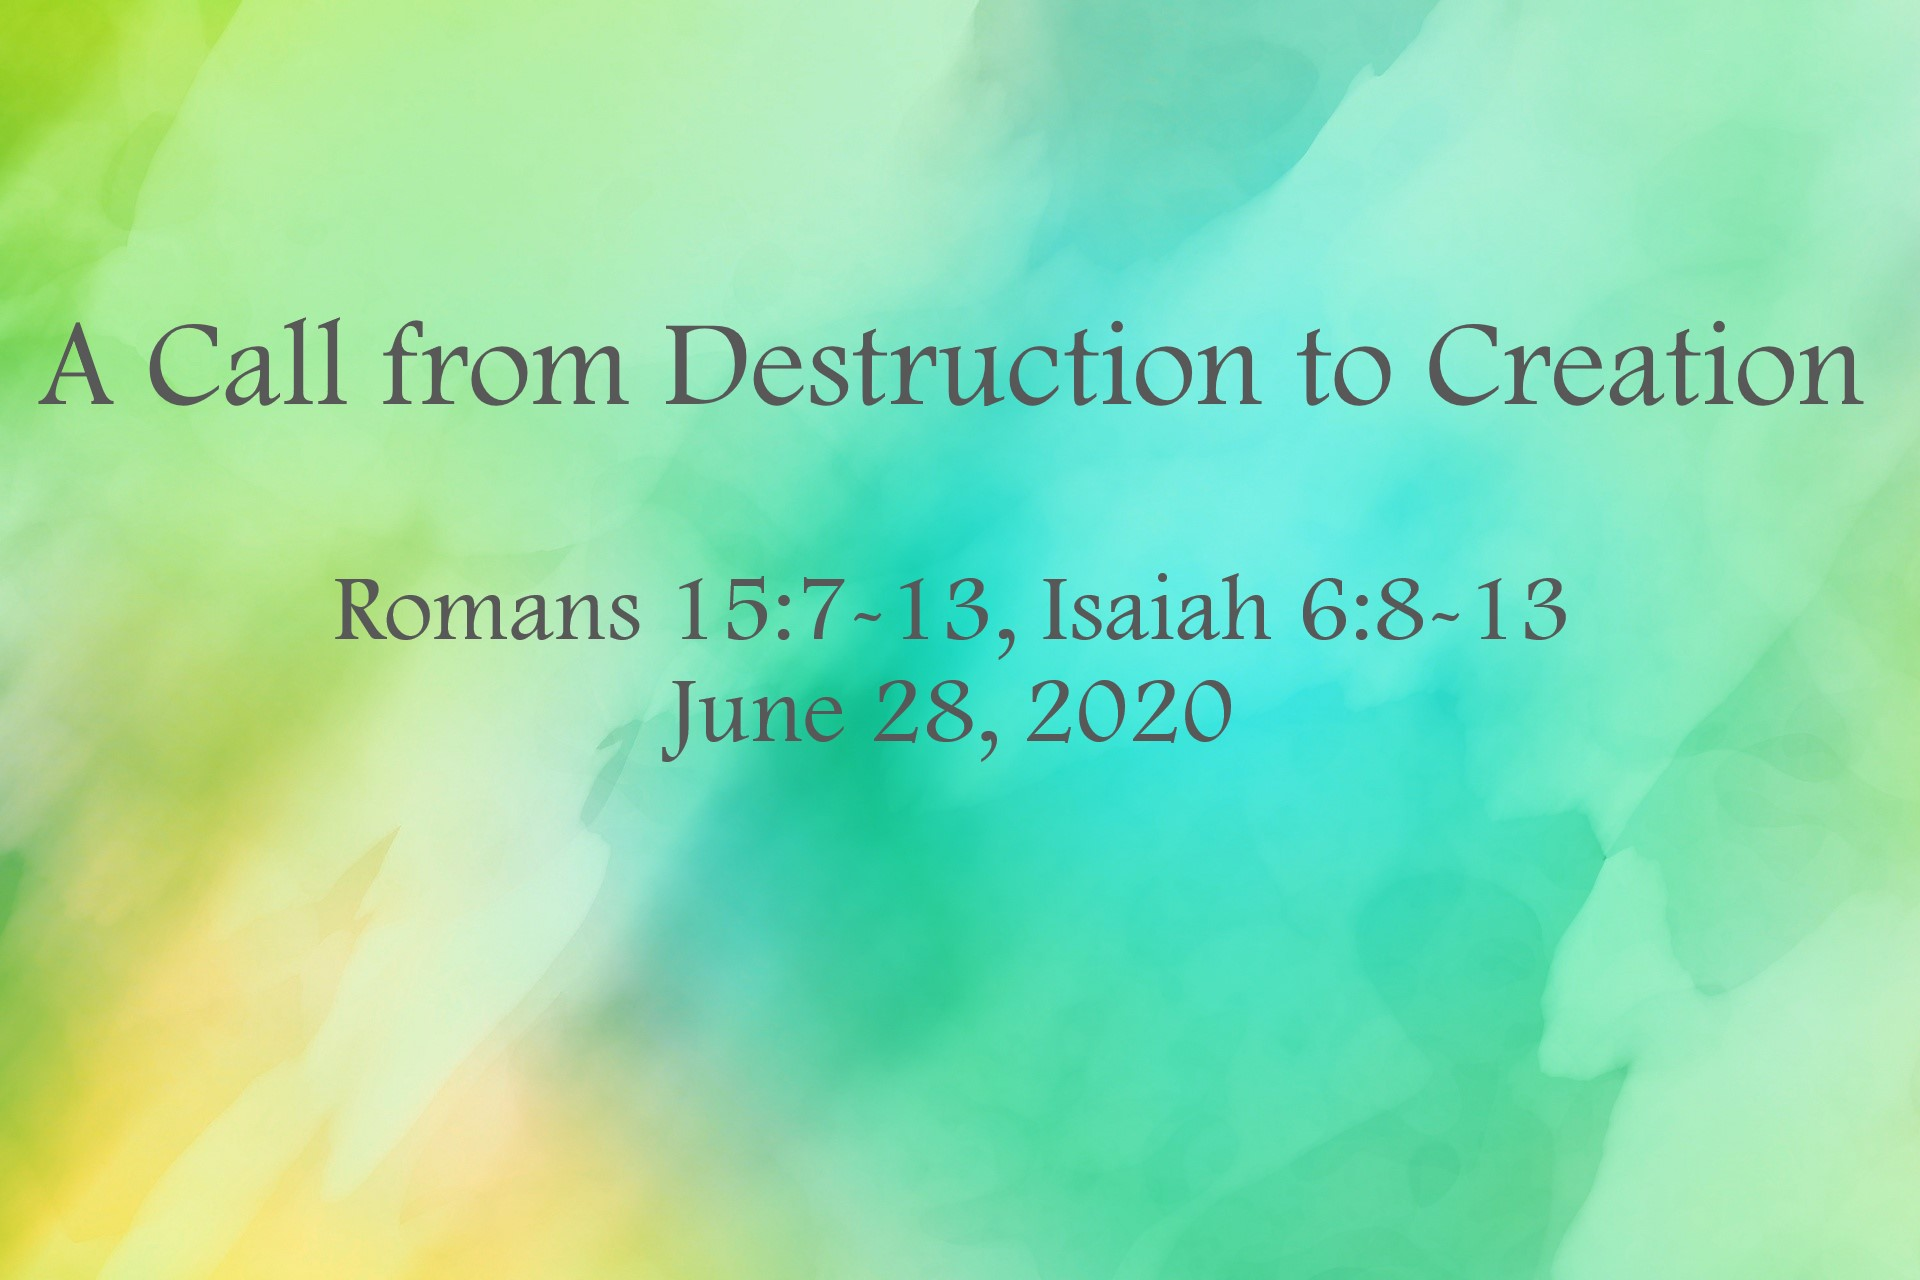 A Call from Destruction to Creation